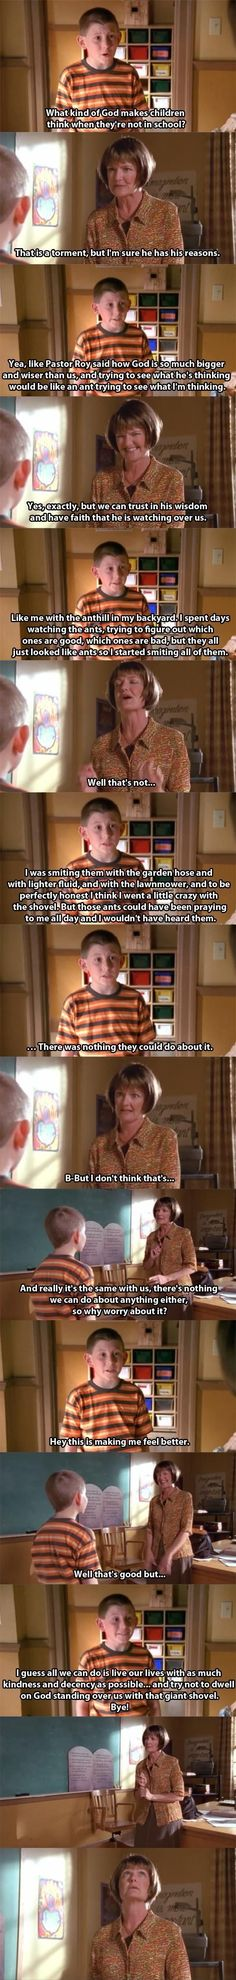 """And at the end of the day, all you can do is live your life with kindness and decency. 